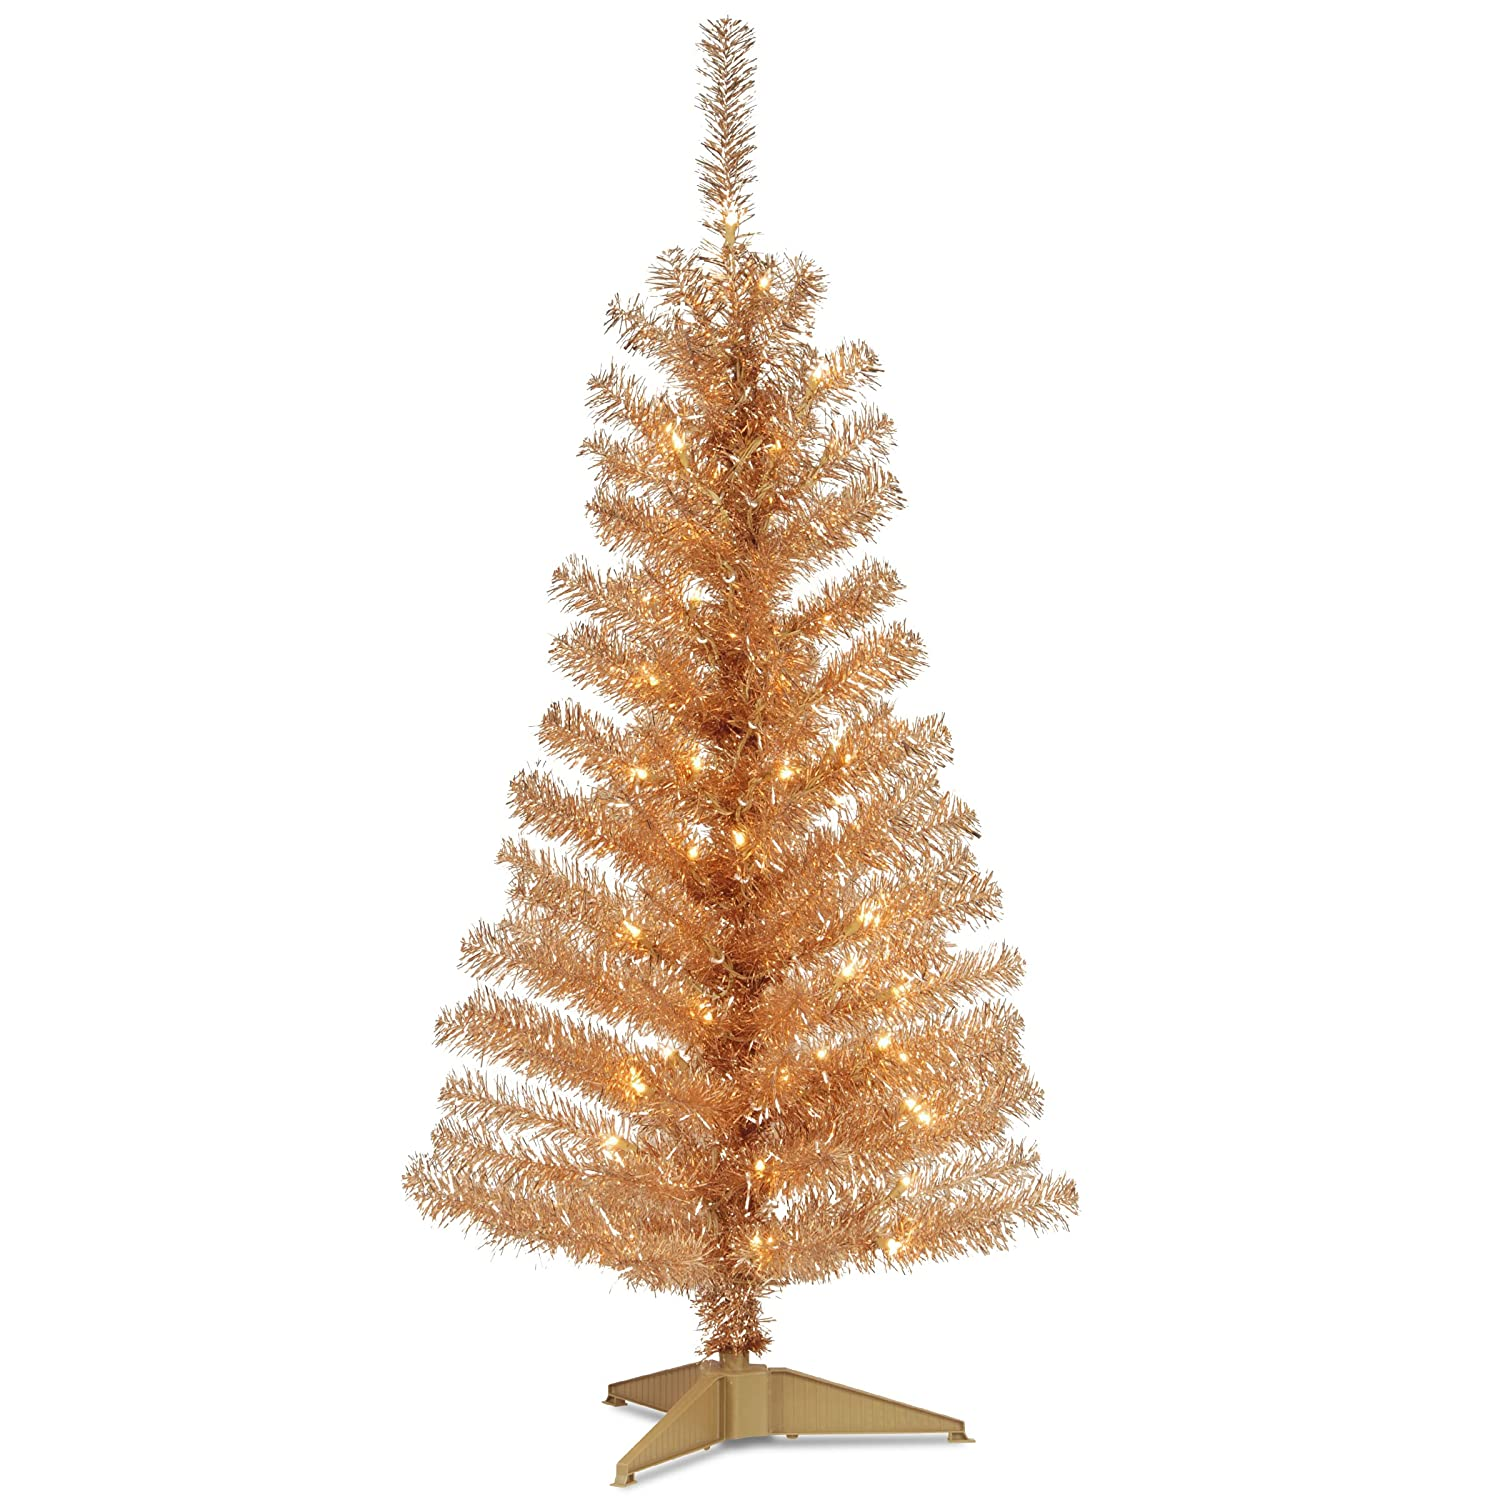 amazoncom national tree 4 foot champagne tinsel tree with plastic stand and 70 clear lights tt33 302 40 home kitchen